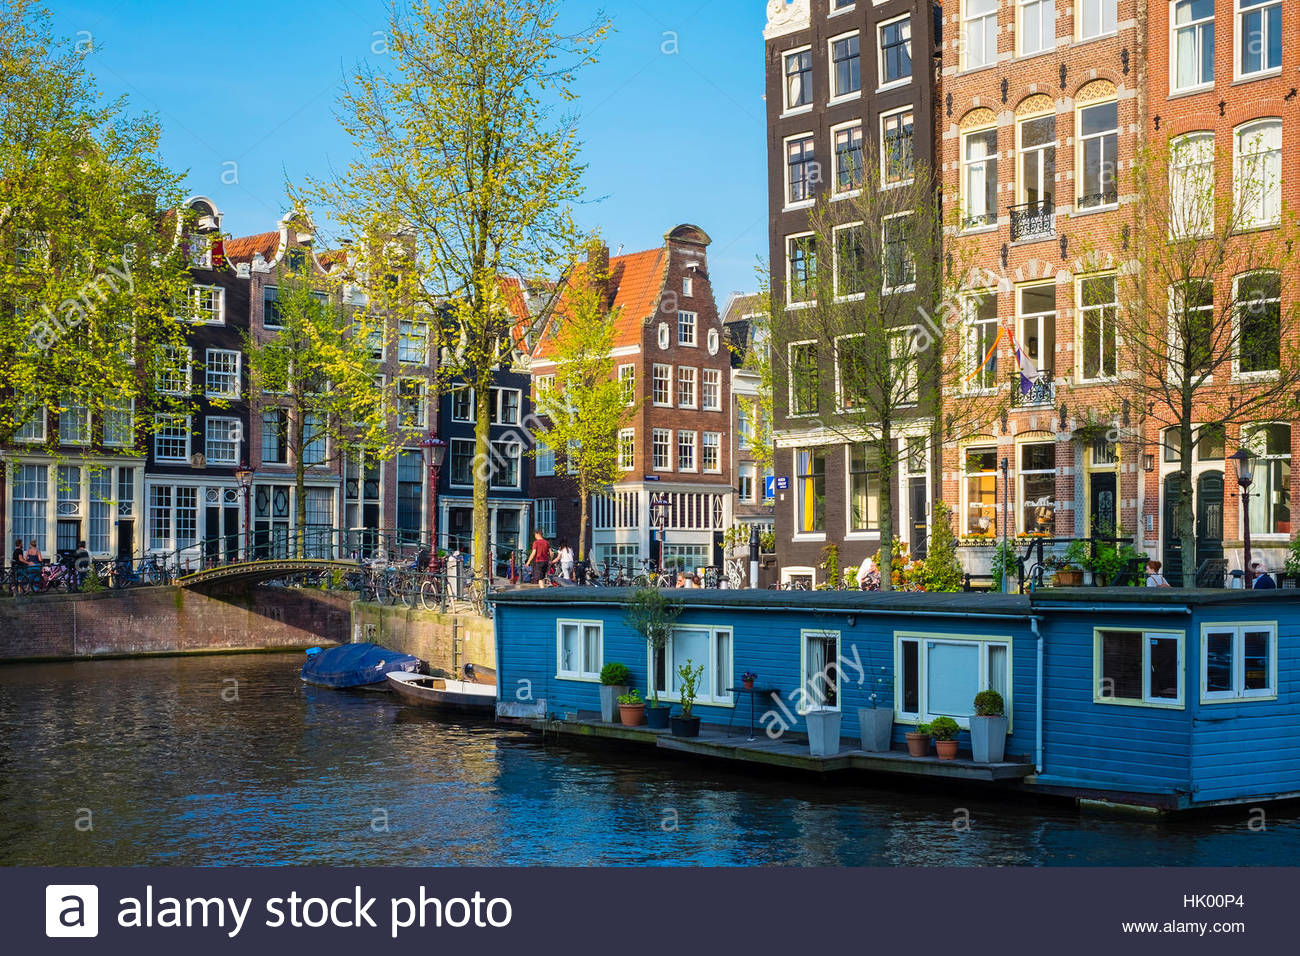 Netherlands, North Holland, Amsterdam. Canal houses and houseboat on the Herengracht canal at intersection of Brouwersgracht. - Stock Image